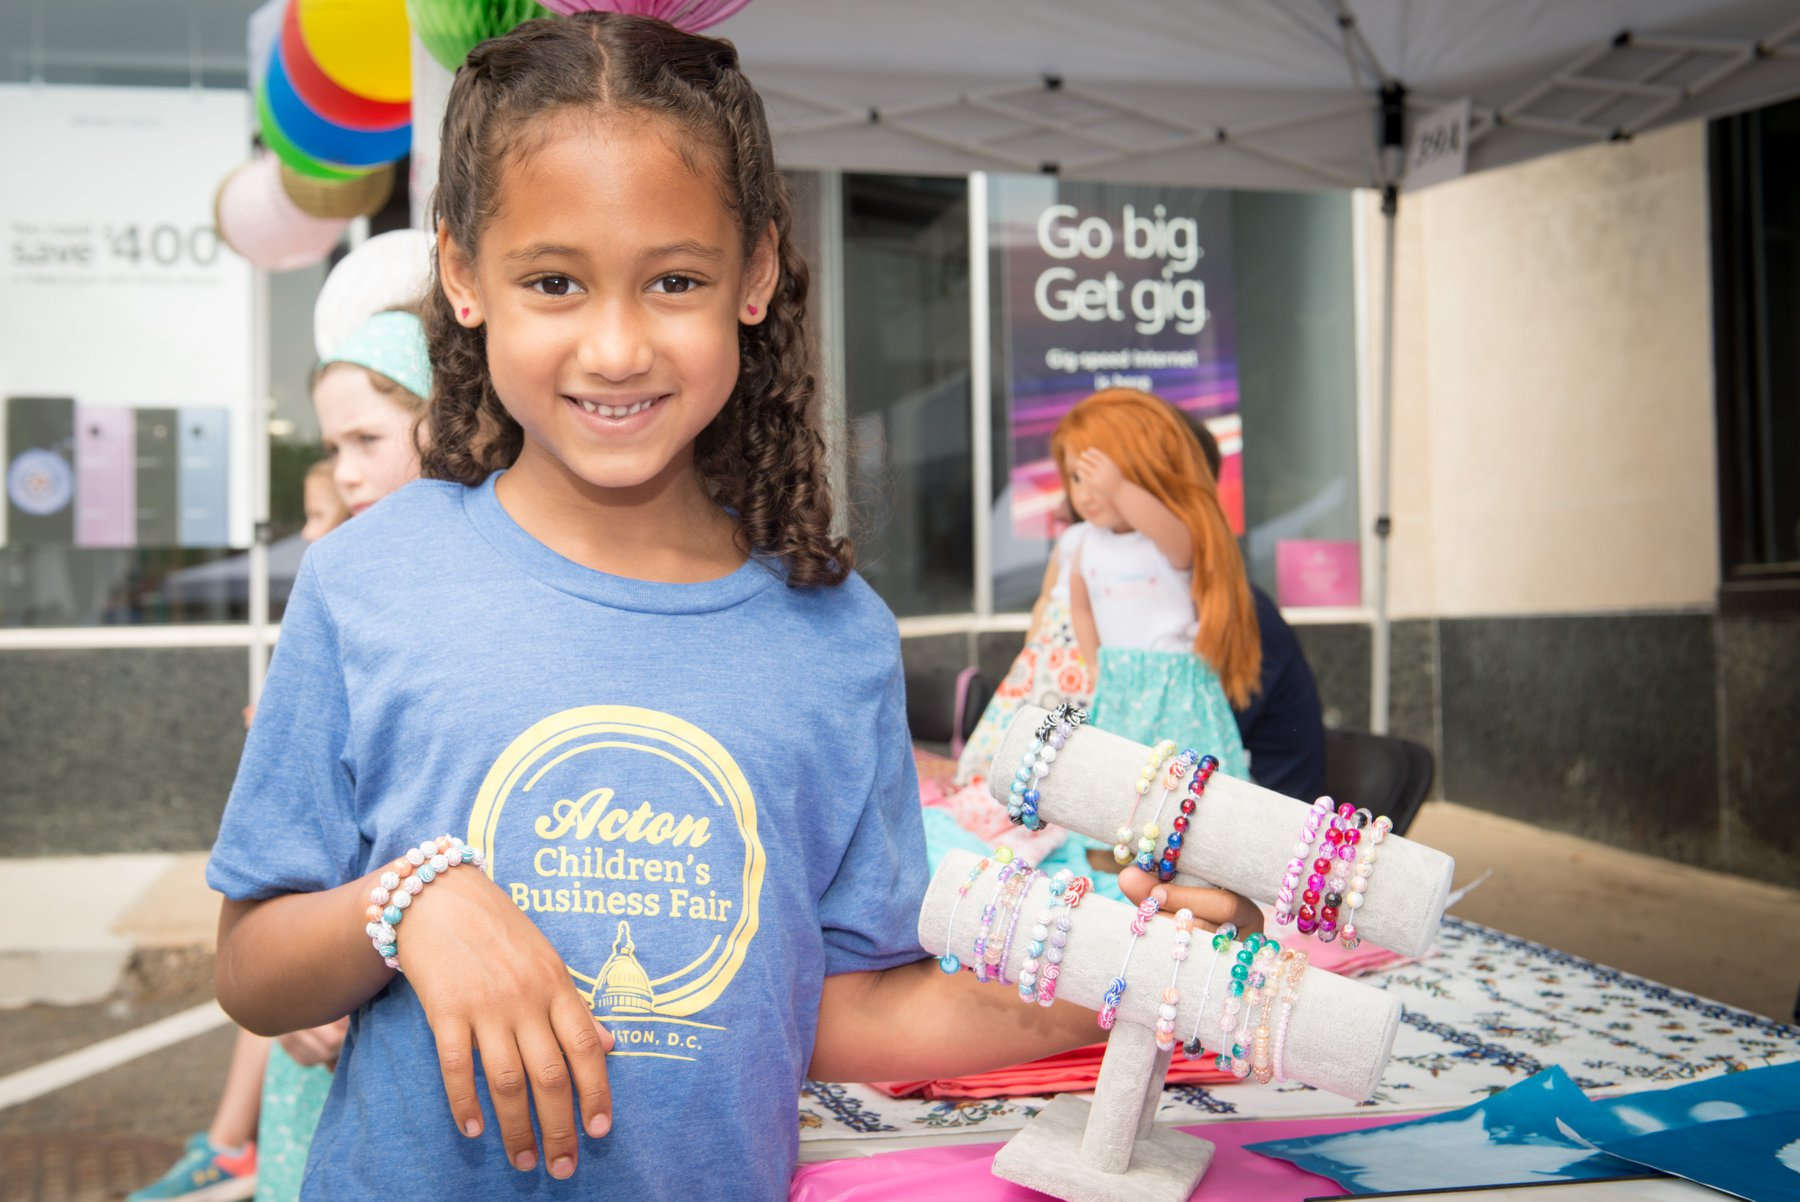 7 Great Small Business Ideas For Kids To Start Making Money